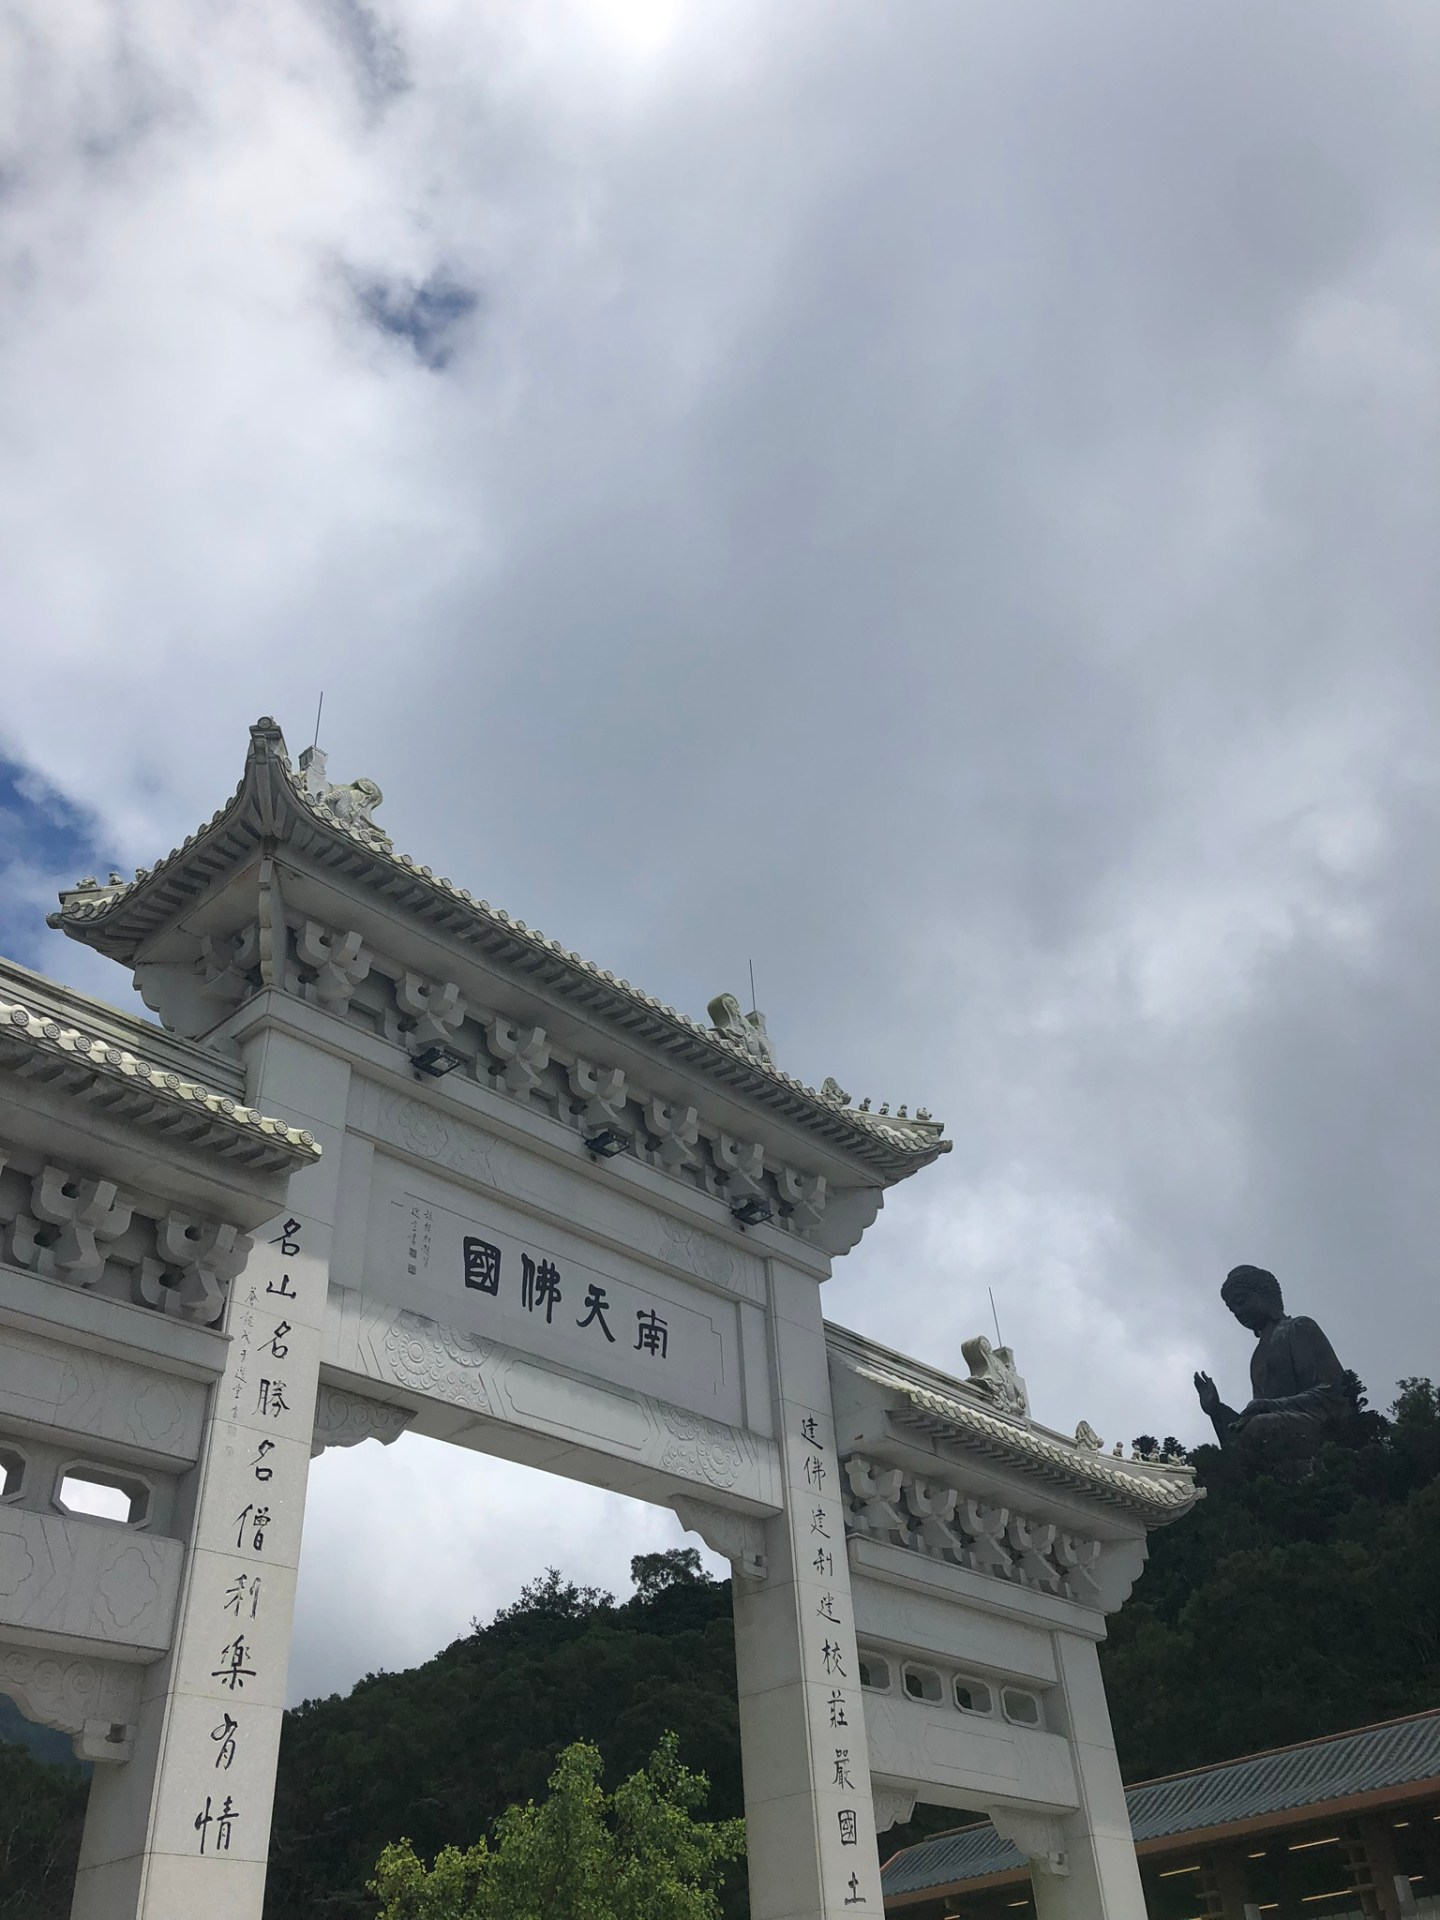 Arch and Big Buddha on Lantau Island, Hong Kong